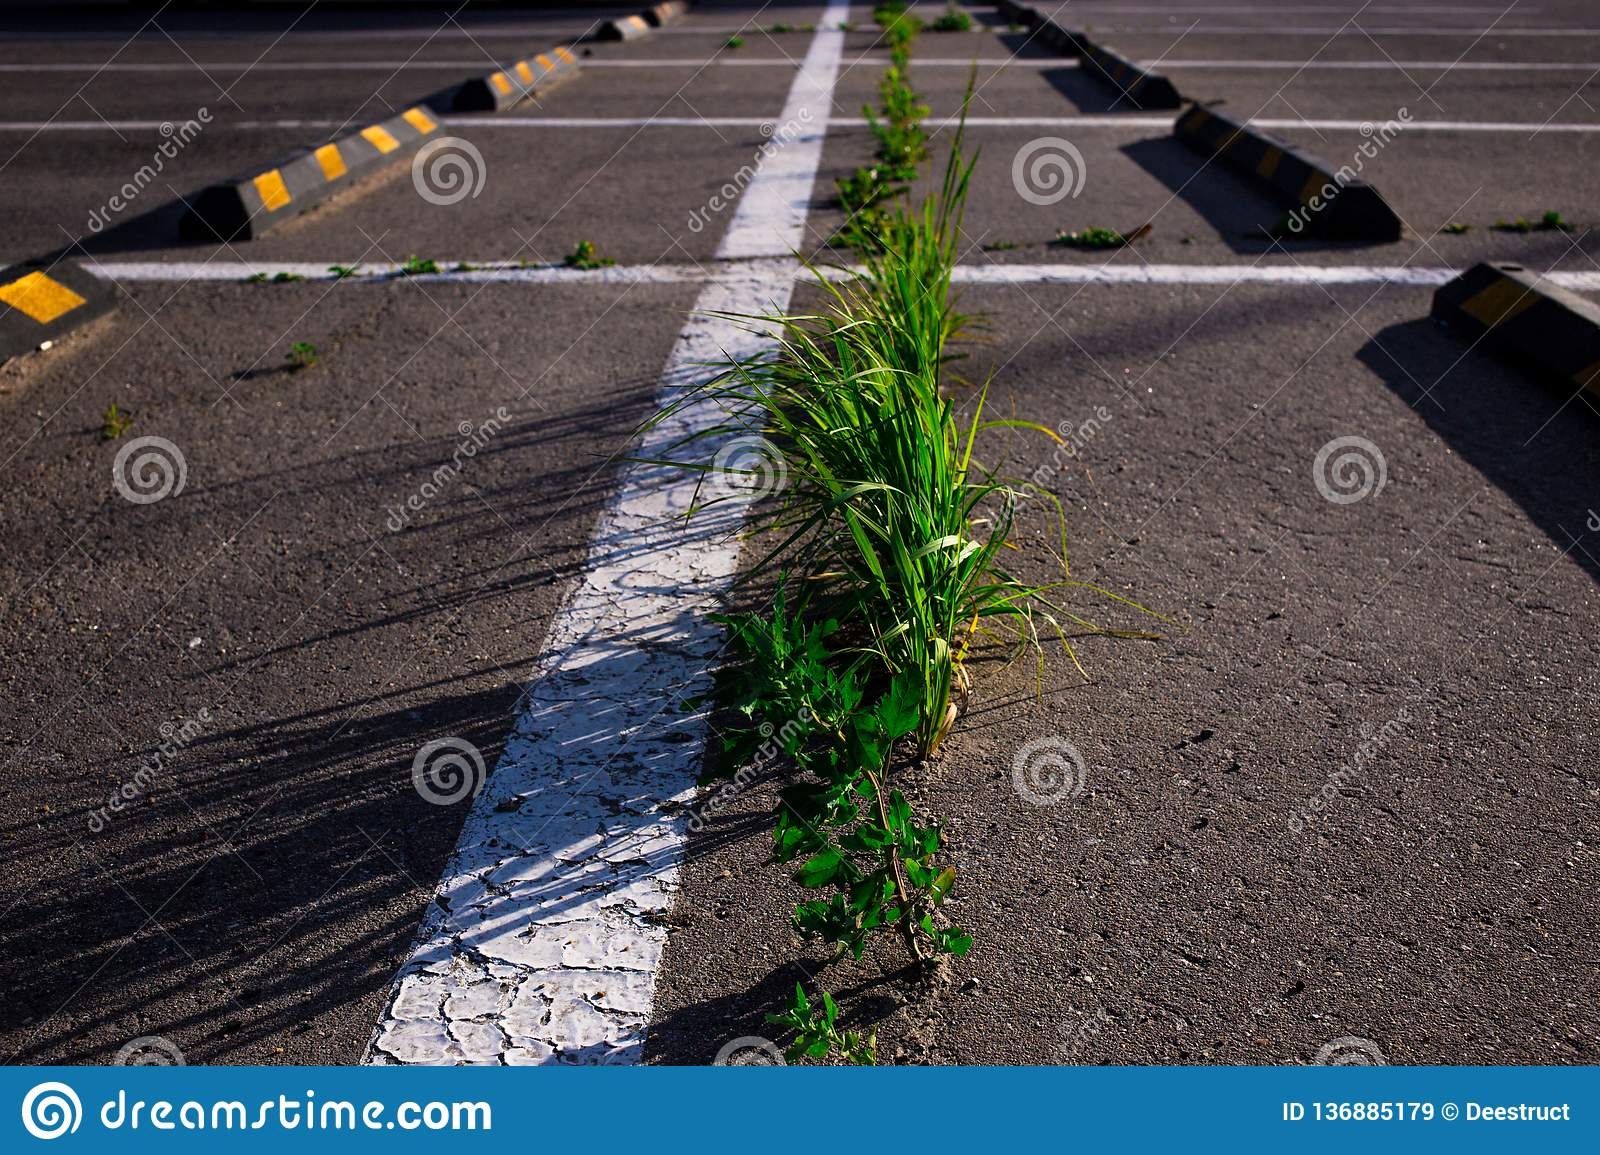 grass growing through the asphalt in the Parking lot in summer